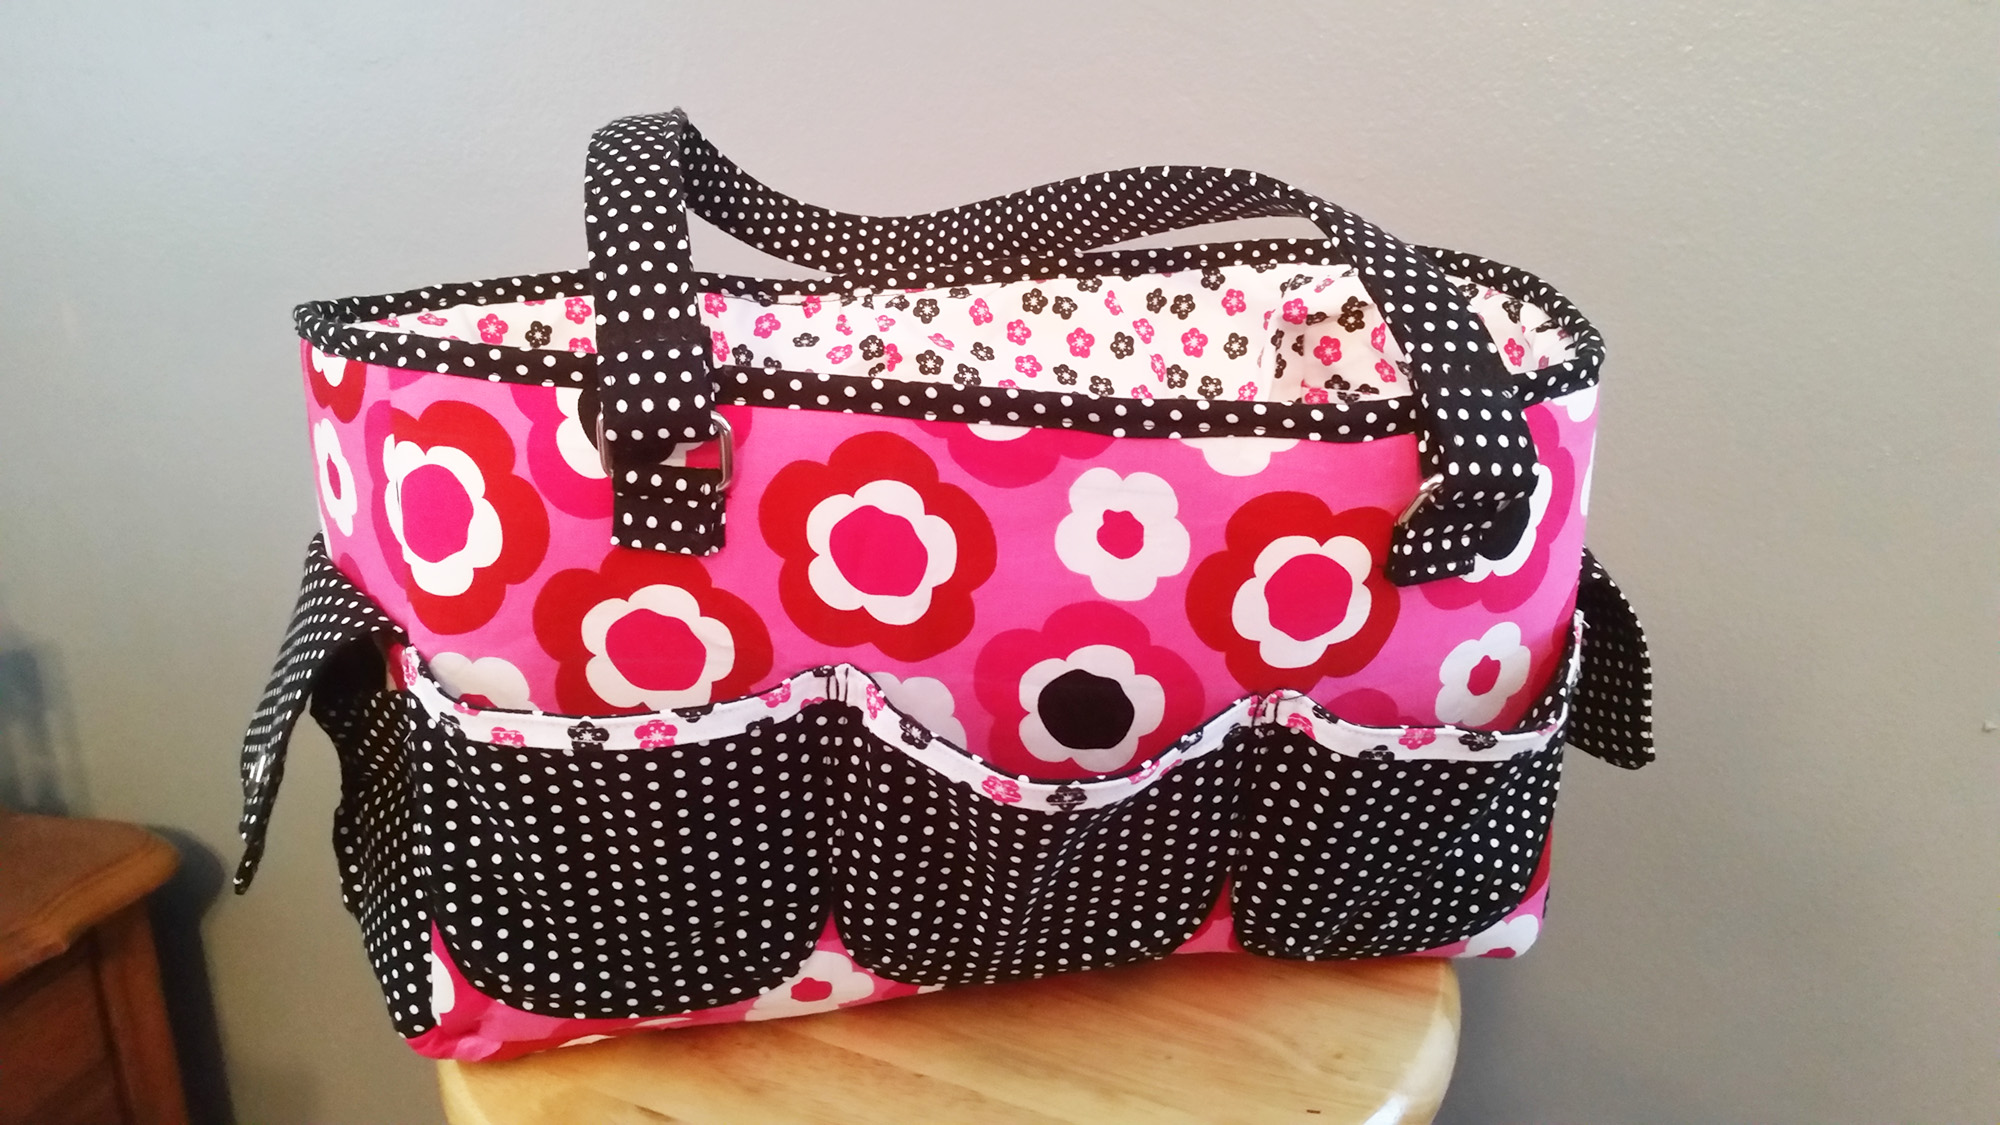 Sew Sweetness Oslo Craft Bag sewing pattern, sewn by Teresa